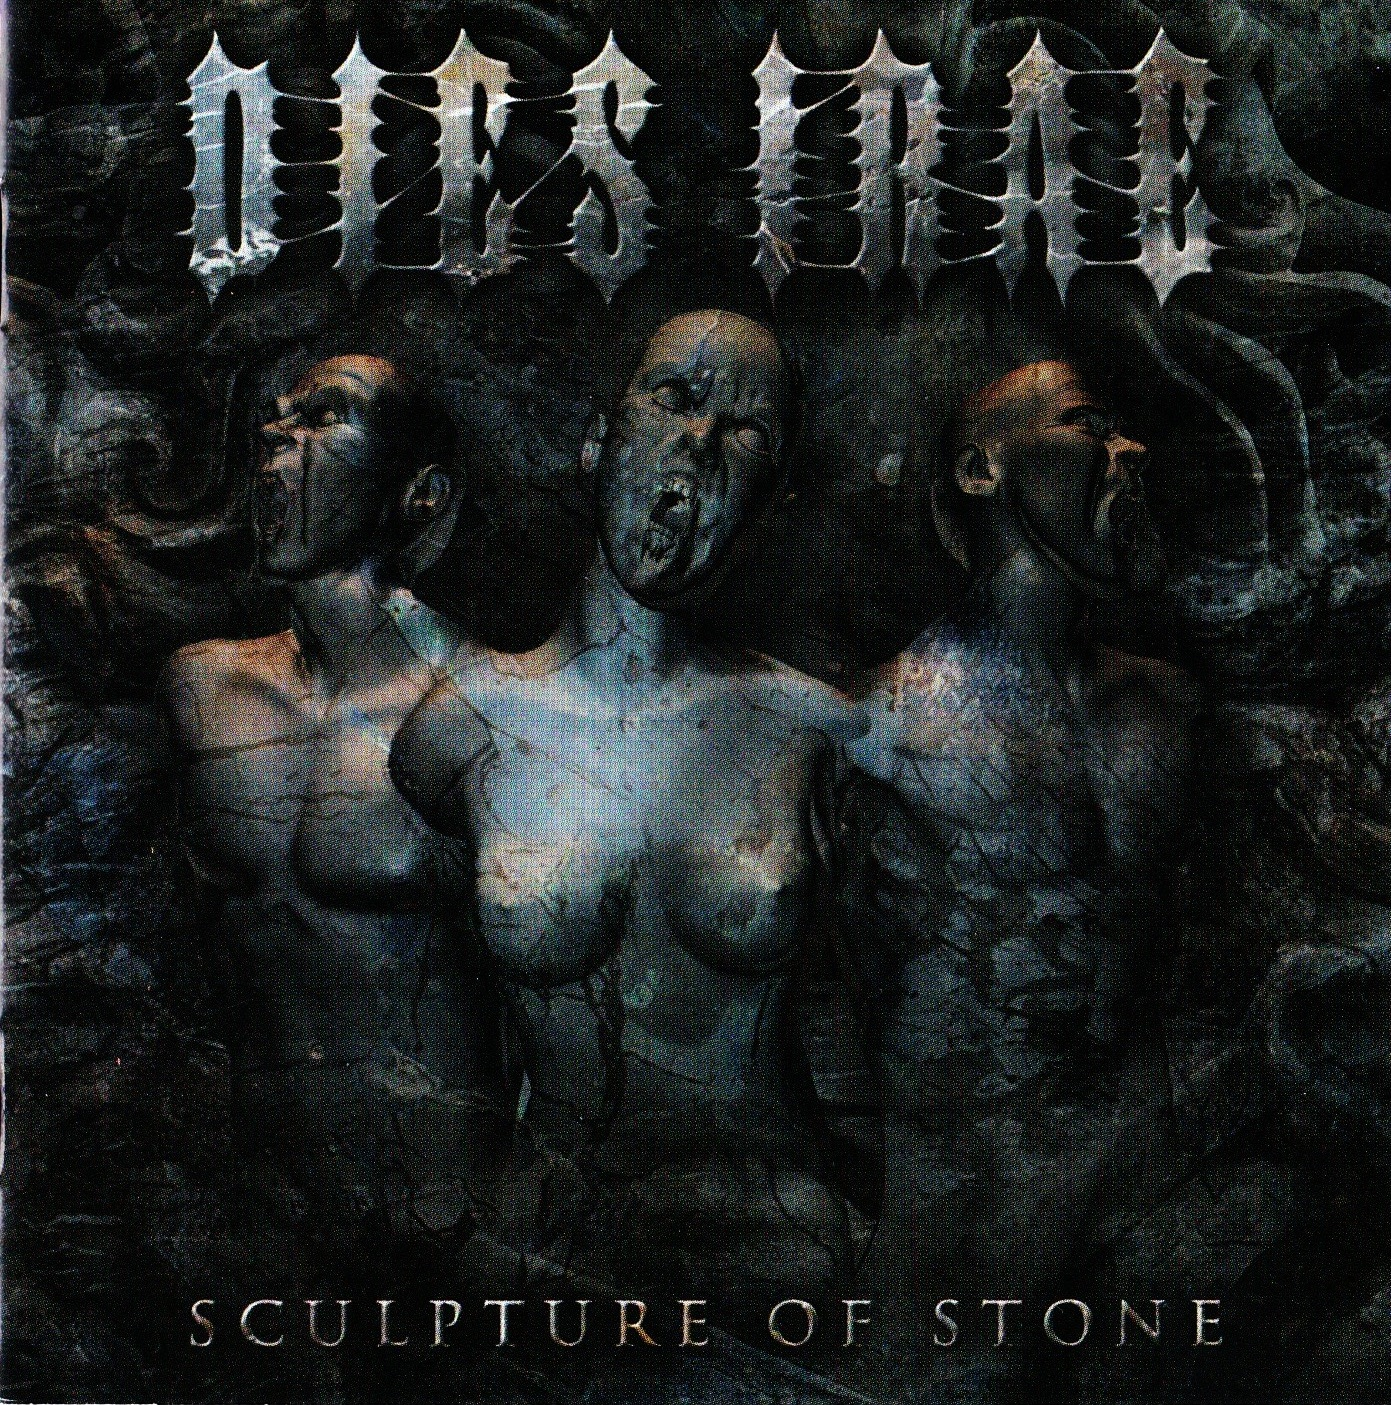 Dies Irae — Sculpture of Stone (2004)